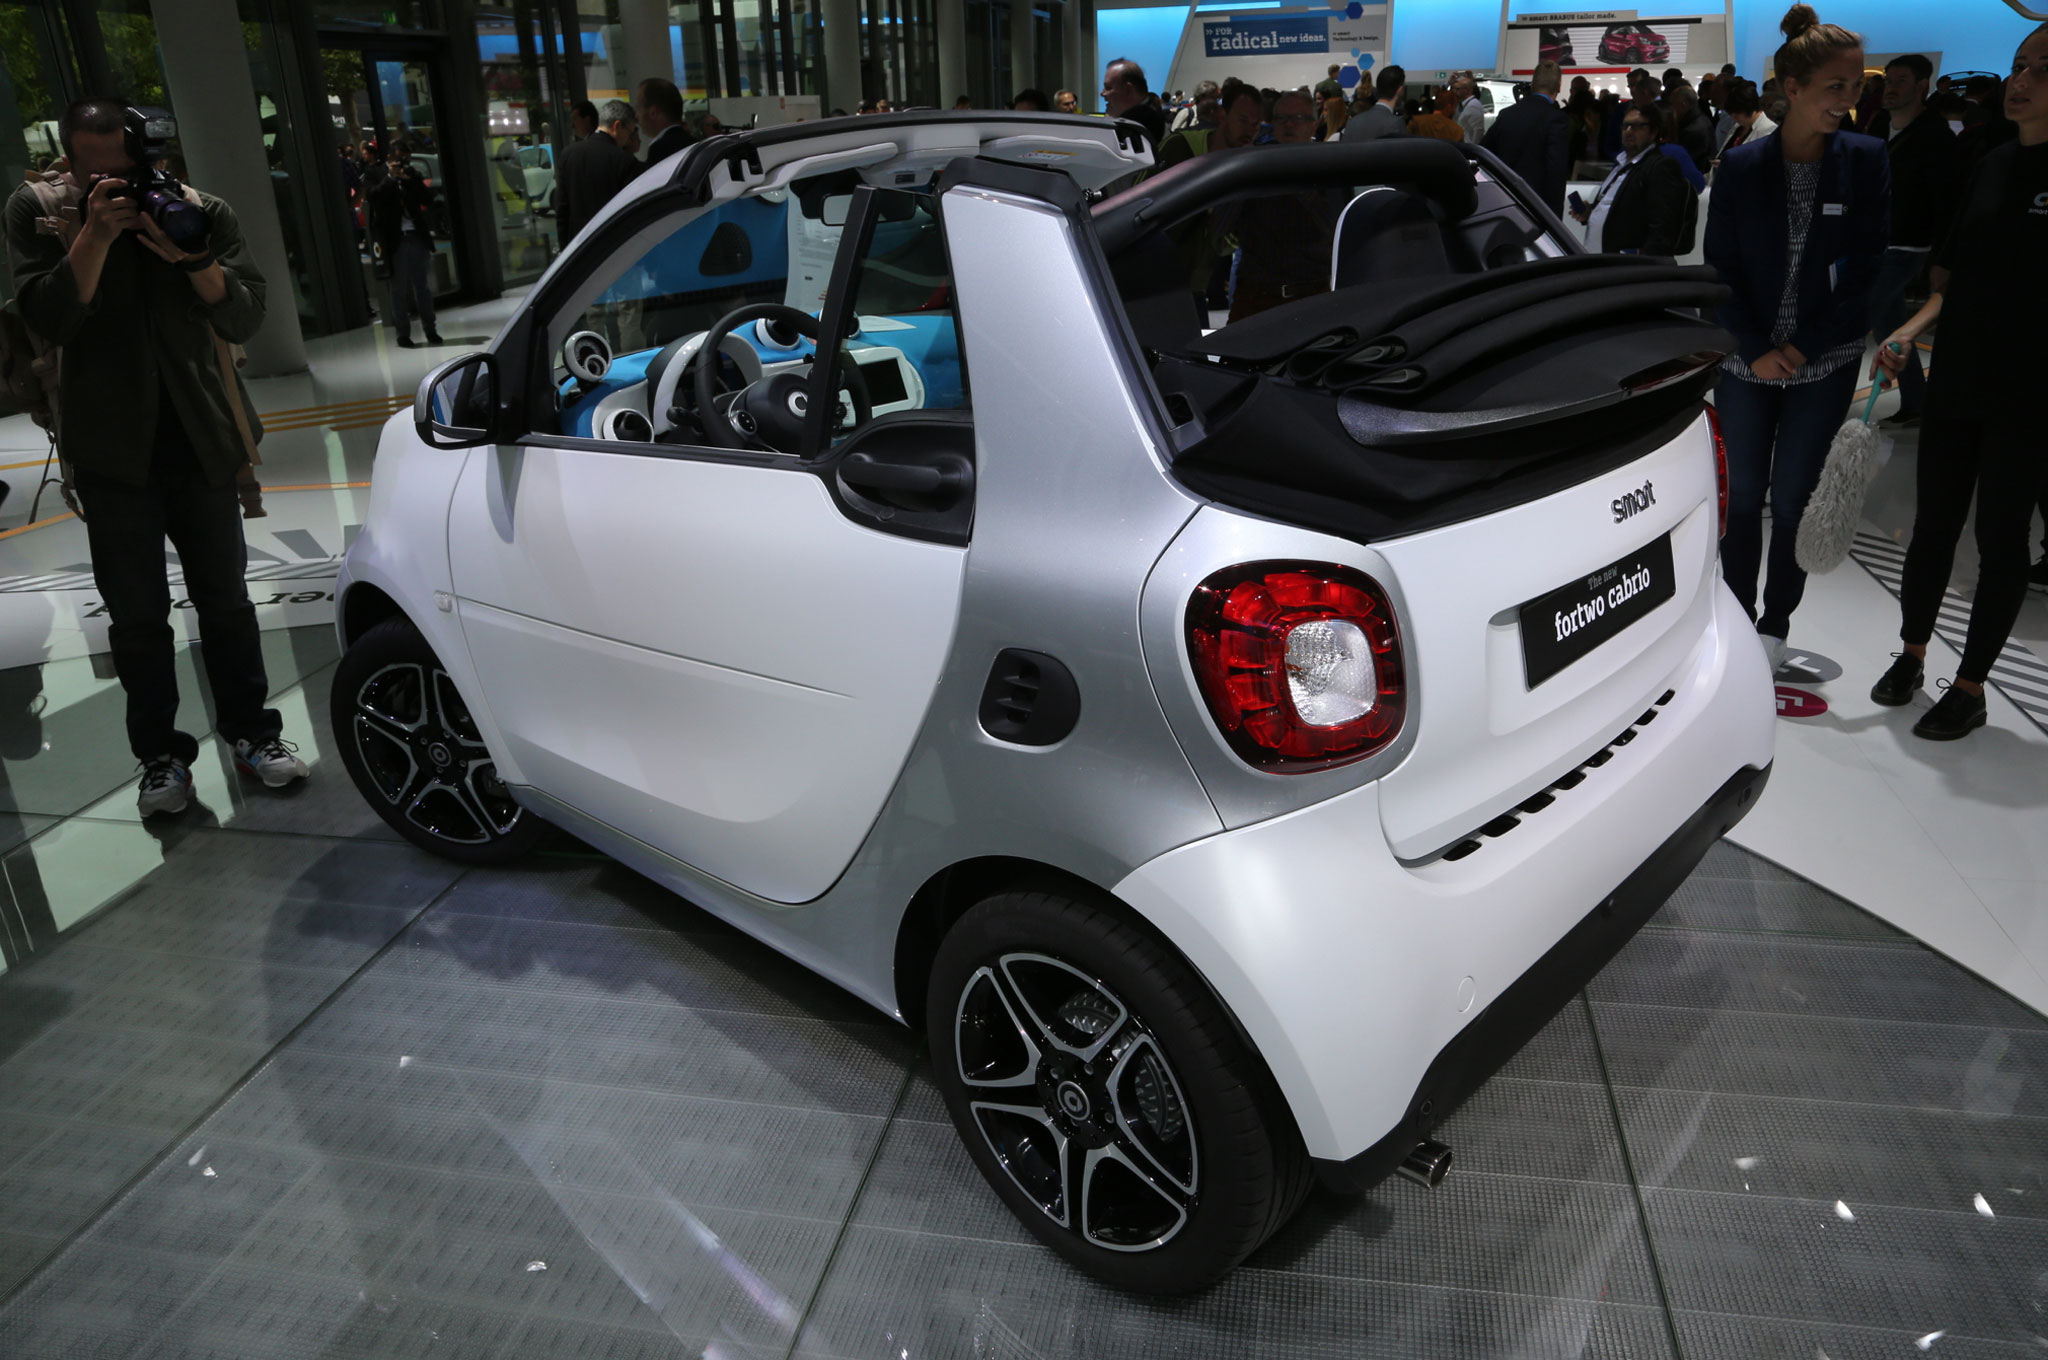 2017 smart fortwo cabriolet revealed ahead of frankfurt debut. Black Bedroom Furniture Sets. Home Design Ideas